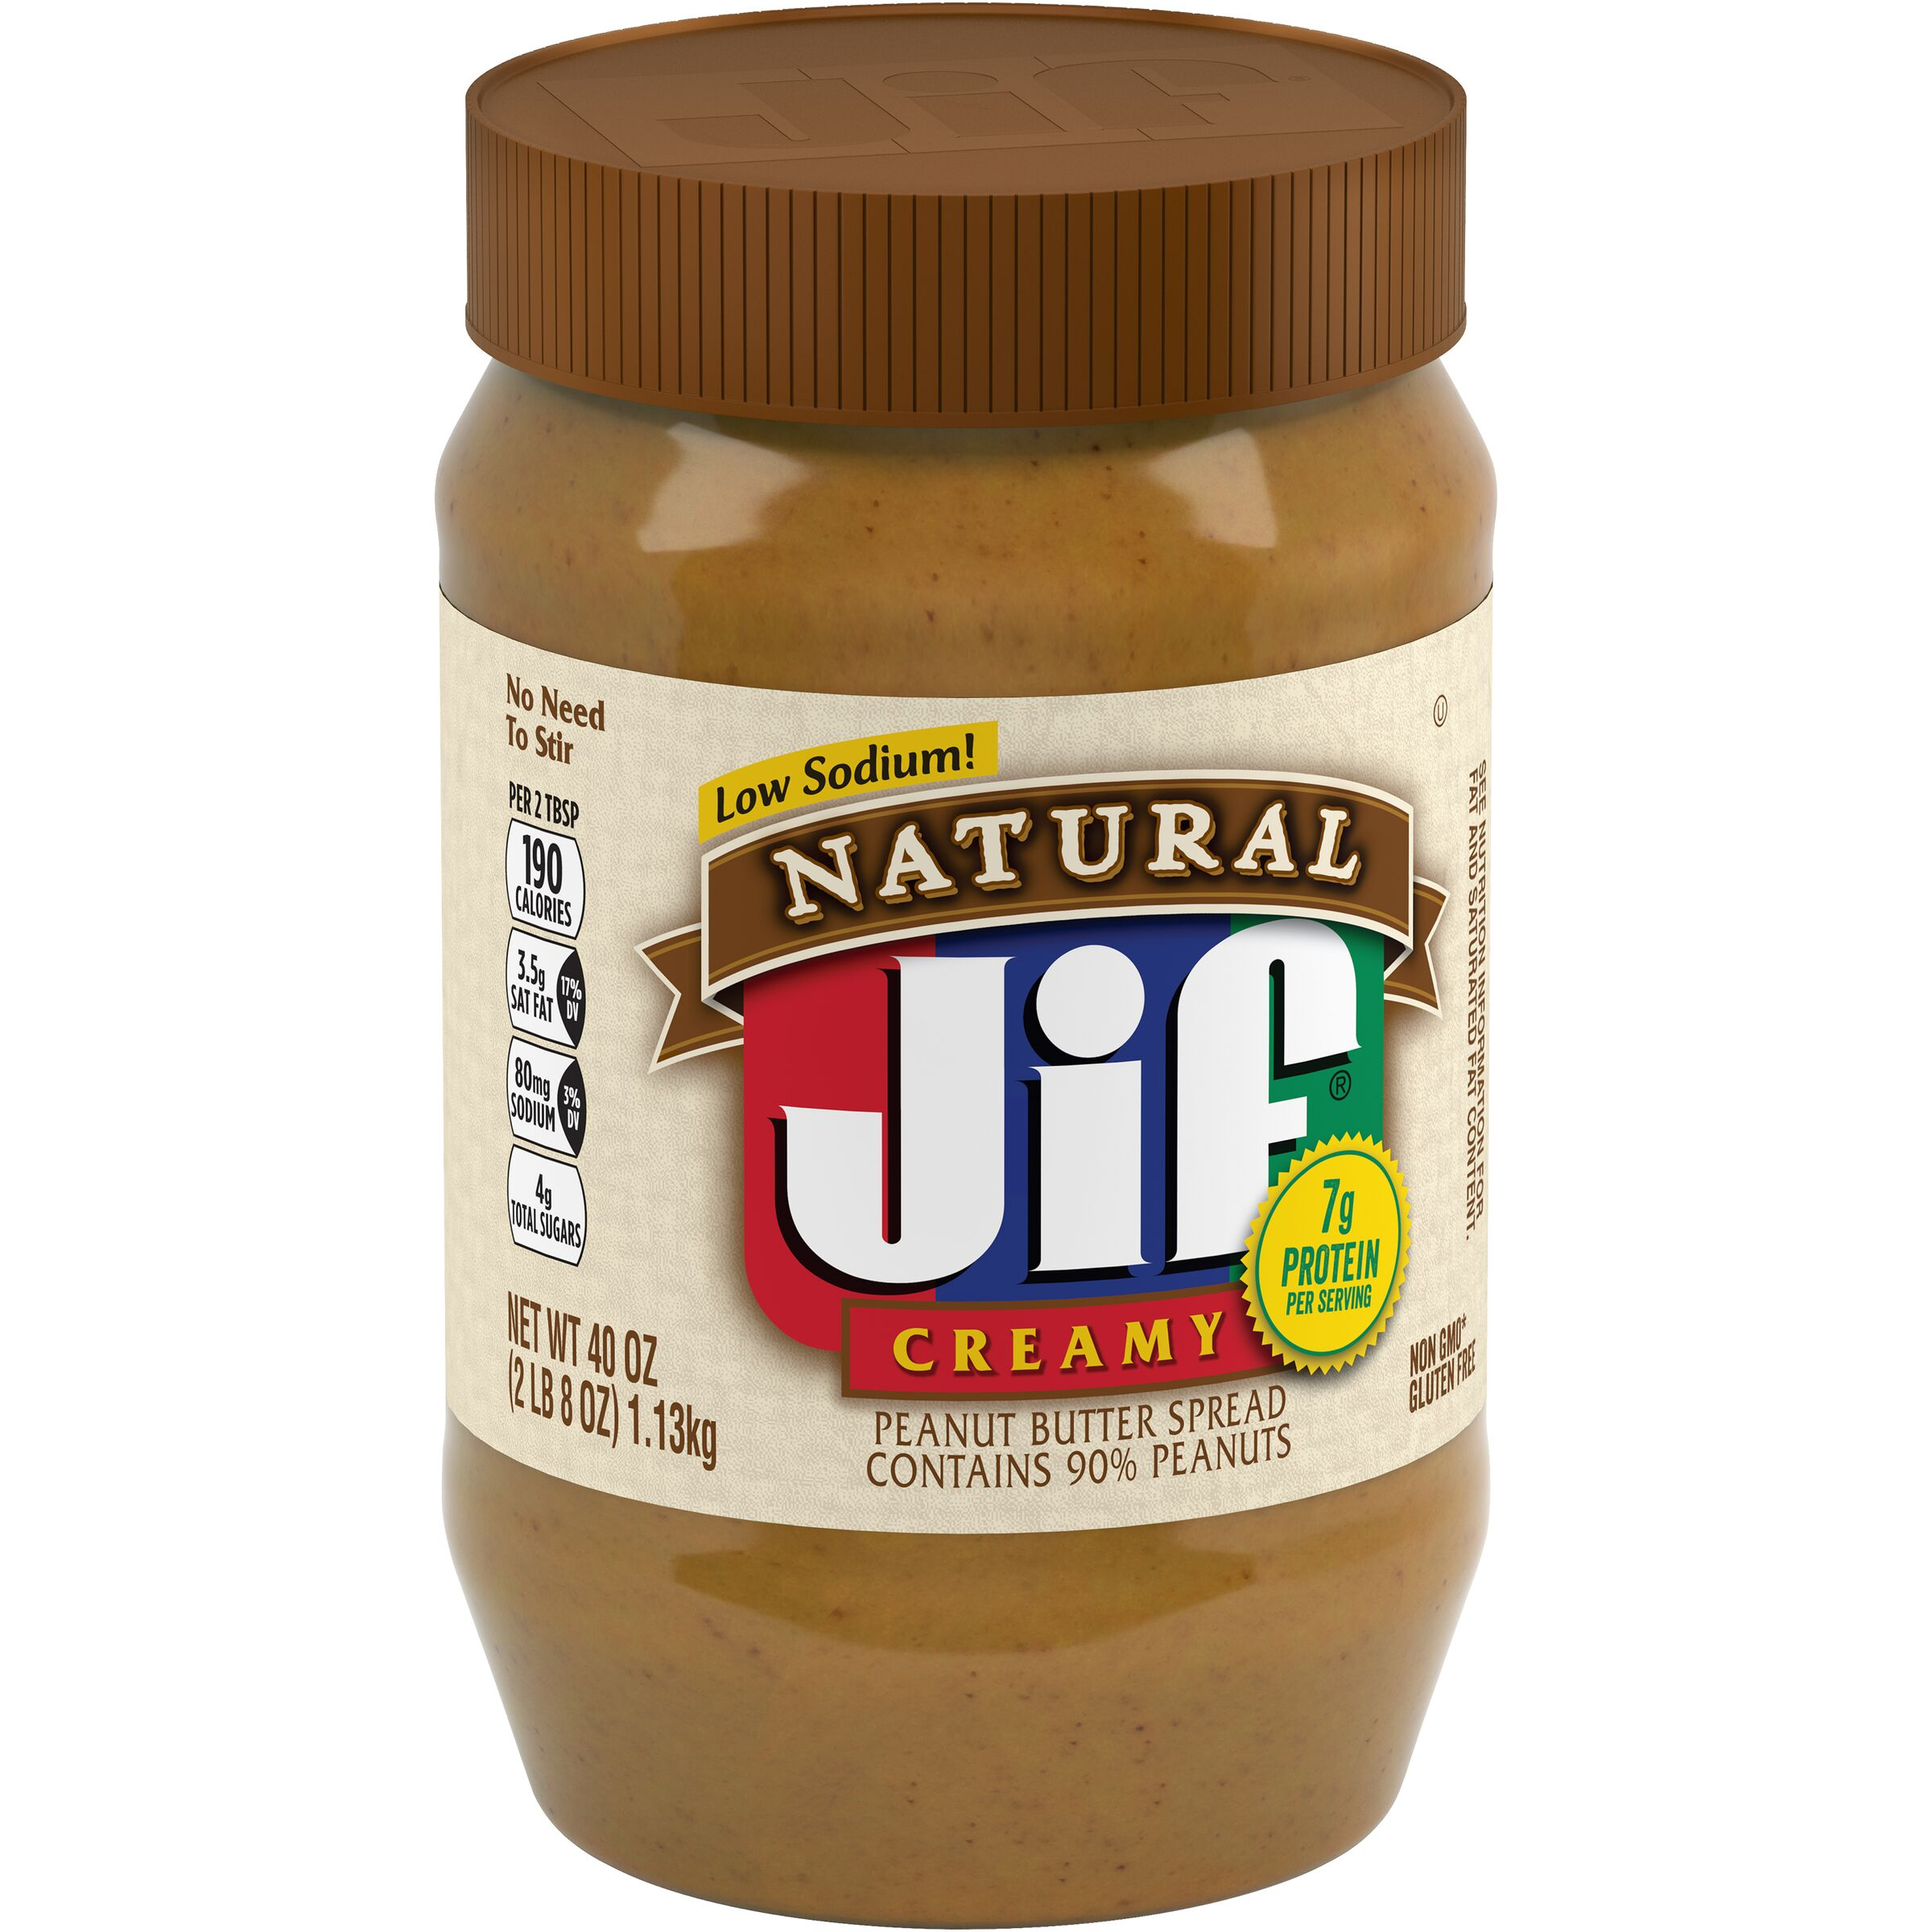 Jif Natural Creamy Peanut Butter Spread Contains 90% Peanuts